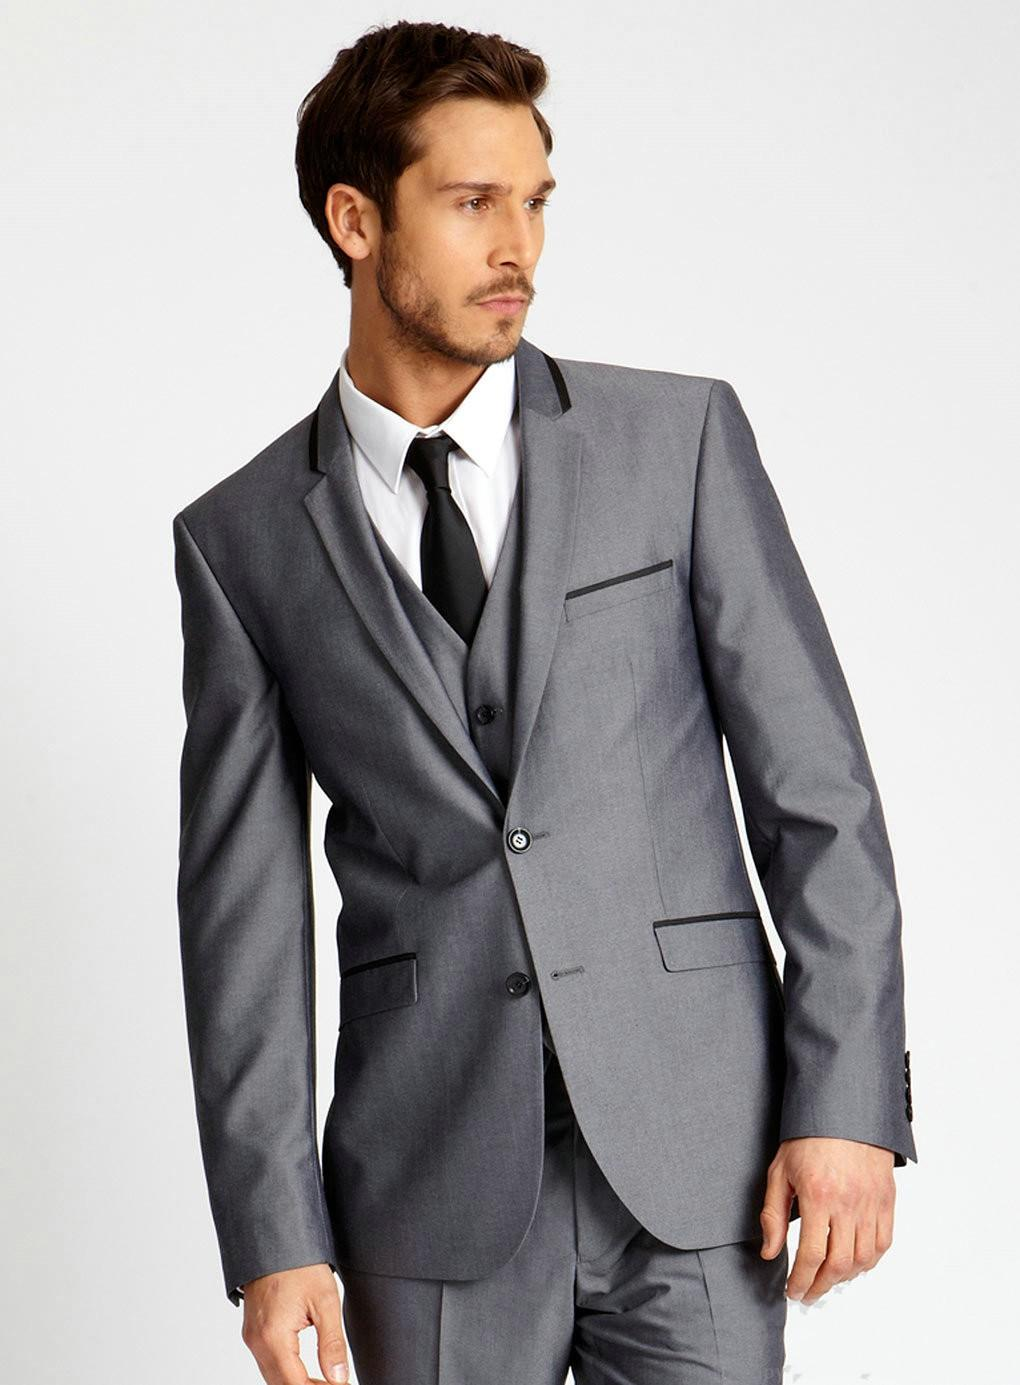 Silver Gray Wedding Suits For Men Notched Lapel Mens Suits Three